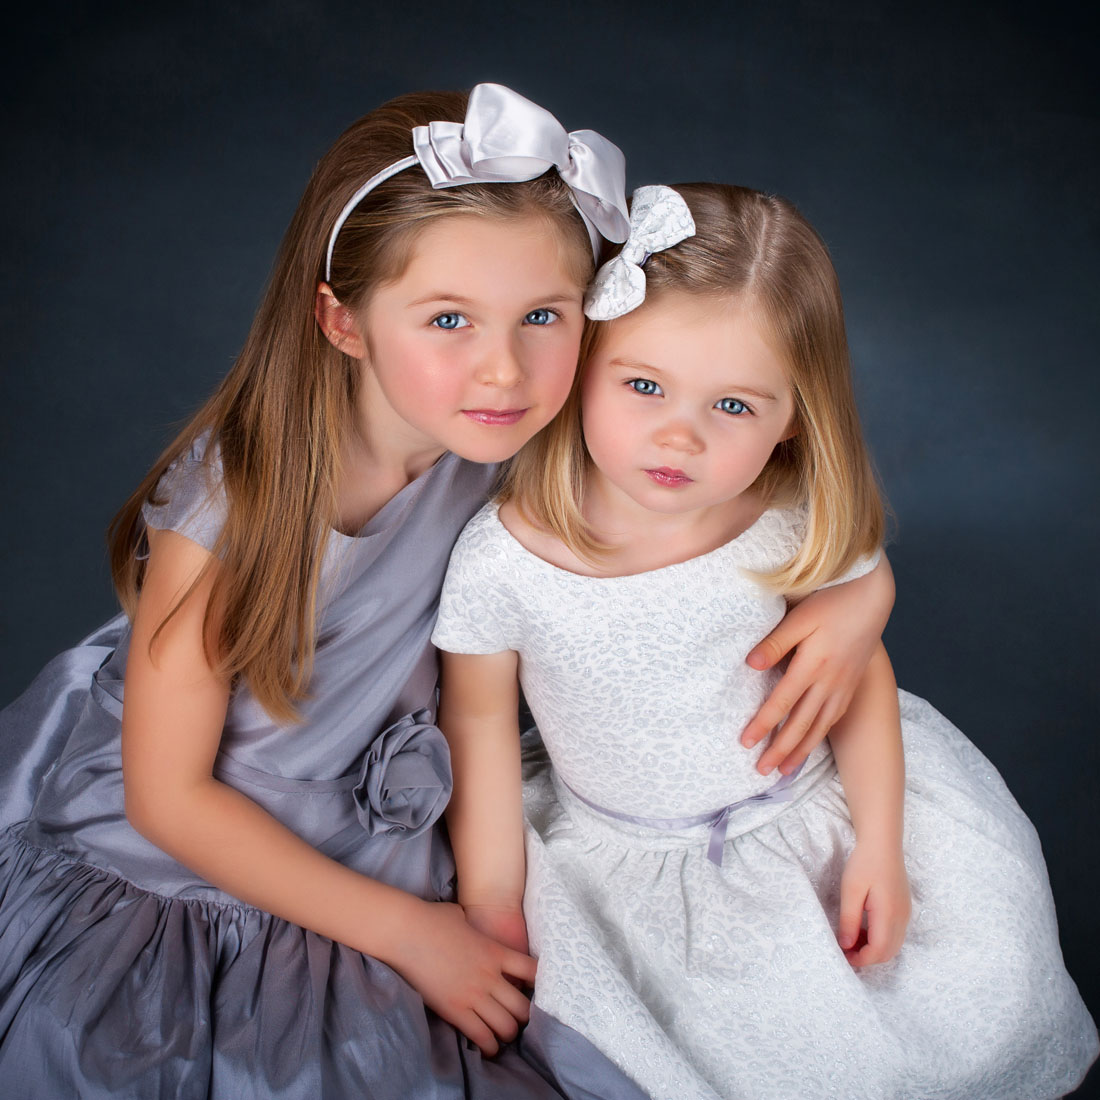 little girls looking up at camera in kids' picture at family portrait studio